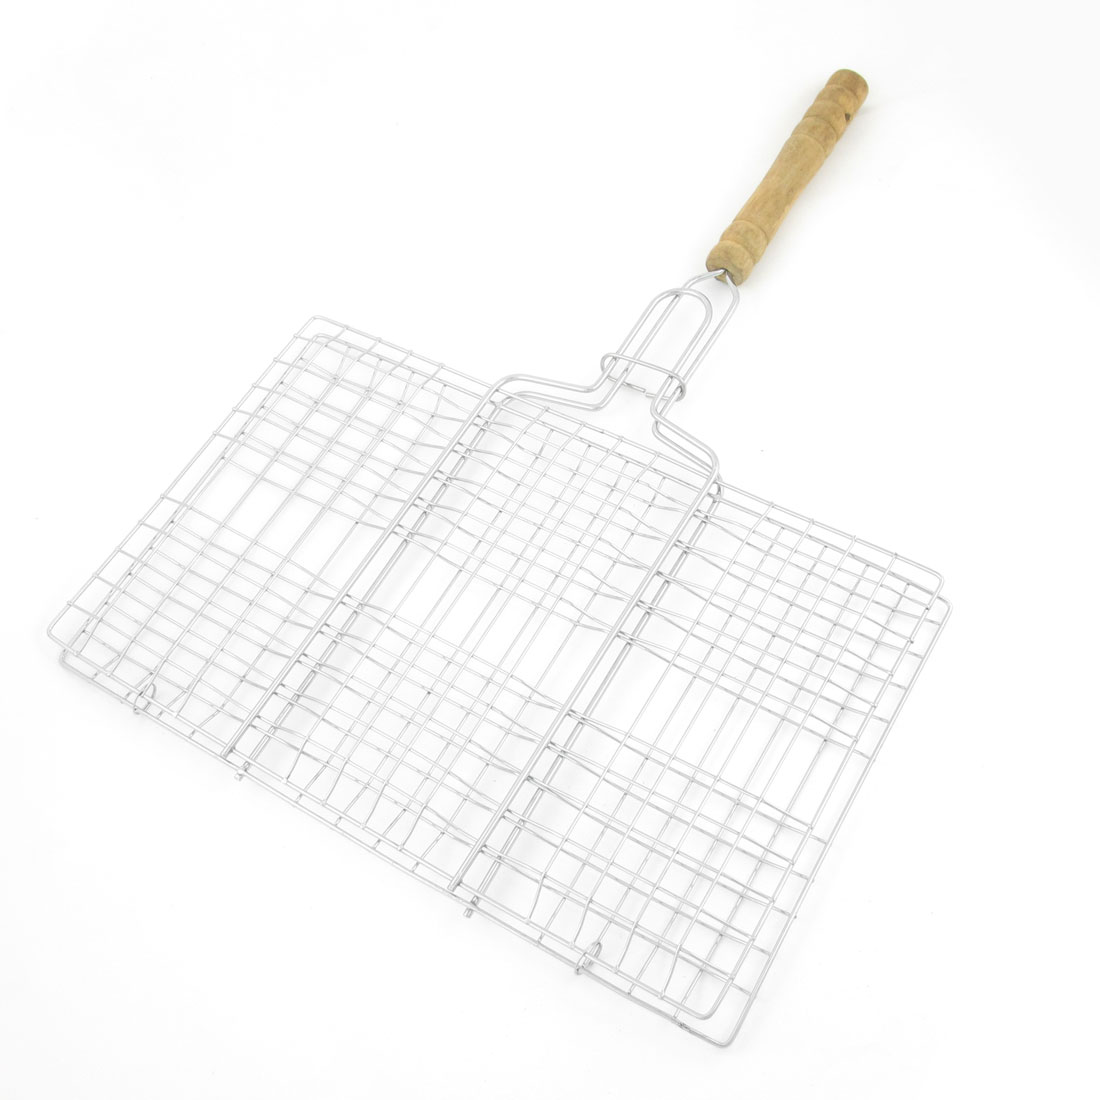 Picnic Camp Silver Tone Metal Multi Holes Grill Netting Barbecue Tool